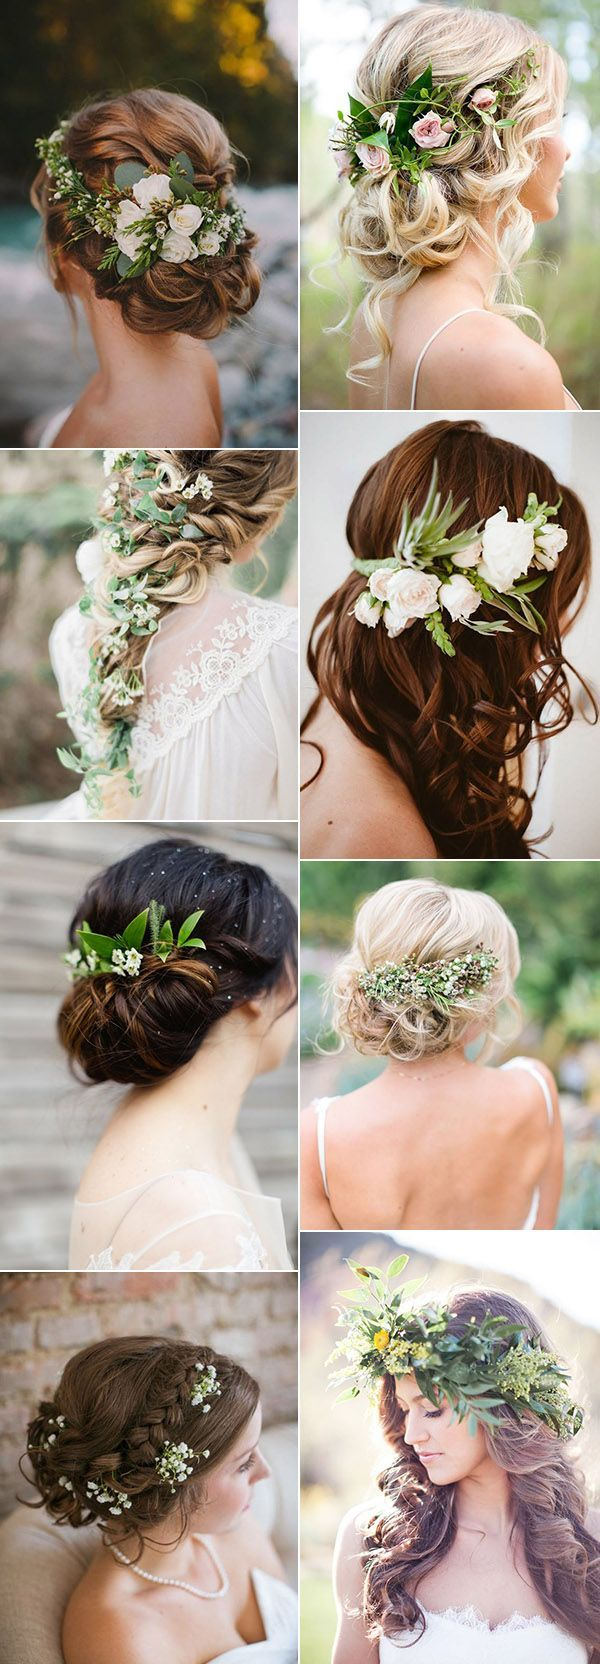 Makeup Ideas: 50 Amazing Ways to Use Green Floral at Your Wedding  Oh Best Day Ever